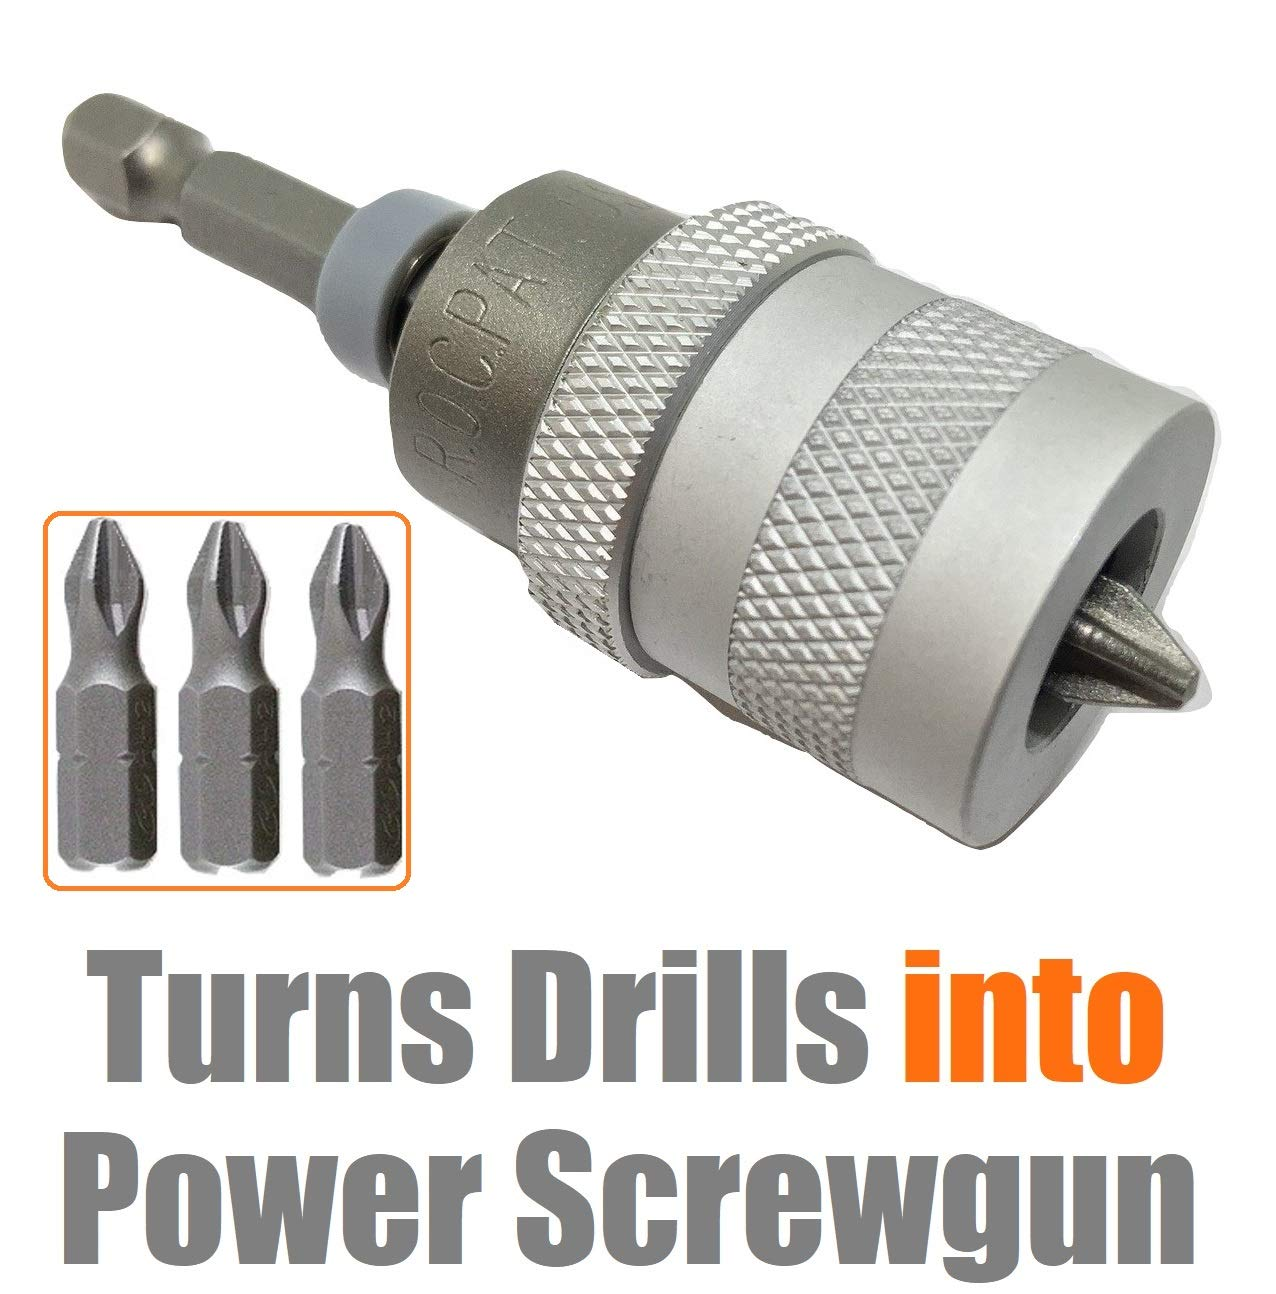 ELECTRIC DRILL to SCREWGUN CONVERTER Adjustable Clutch Drywall Tool Screw Depth Setter w/Manganese S2 Phillips 2 Screwdriver Bit | Countersink Plywood Deck PH2 Screws | 1/4 Shank Fits Corded Cordless by Mars-Tool